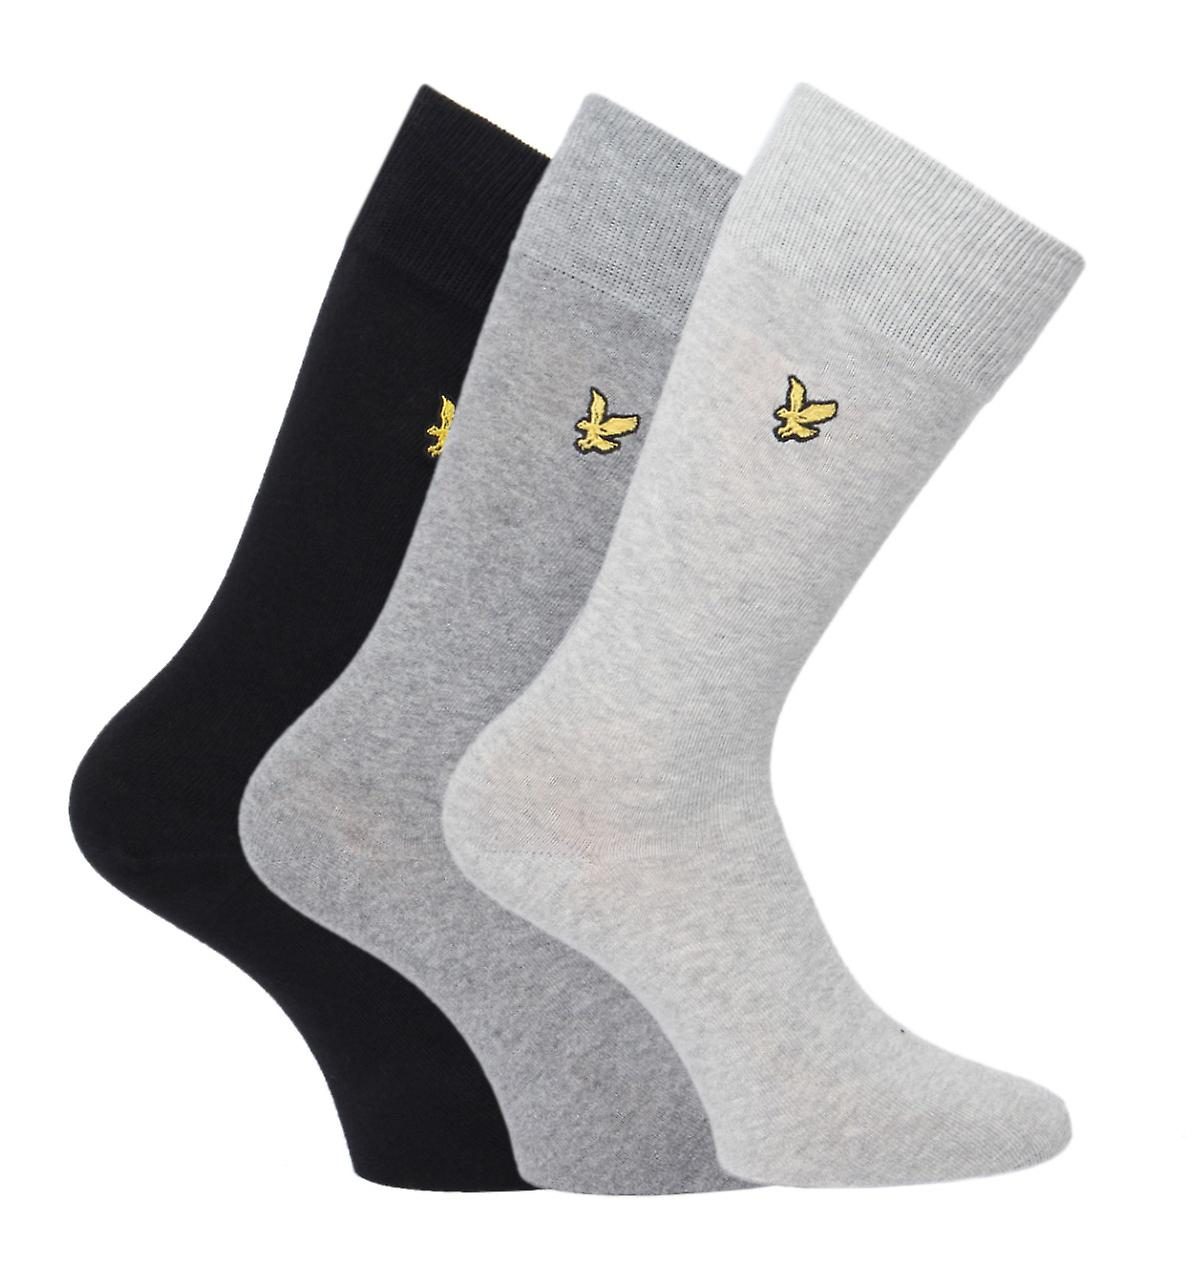 Lyle & Scott Black, Mid Grey & Light Grey 3 Pack Stretch Cotton Socks